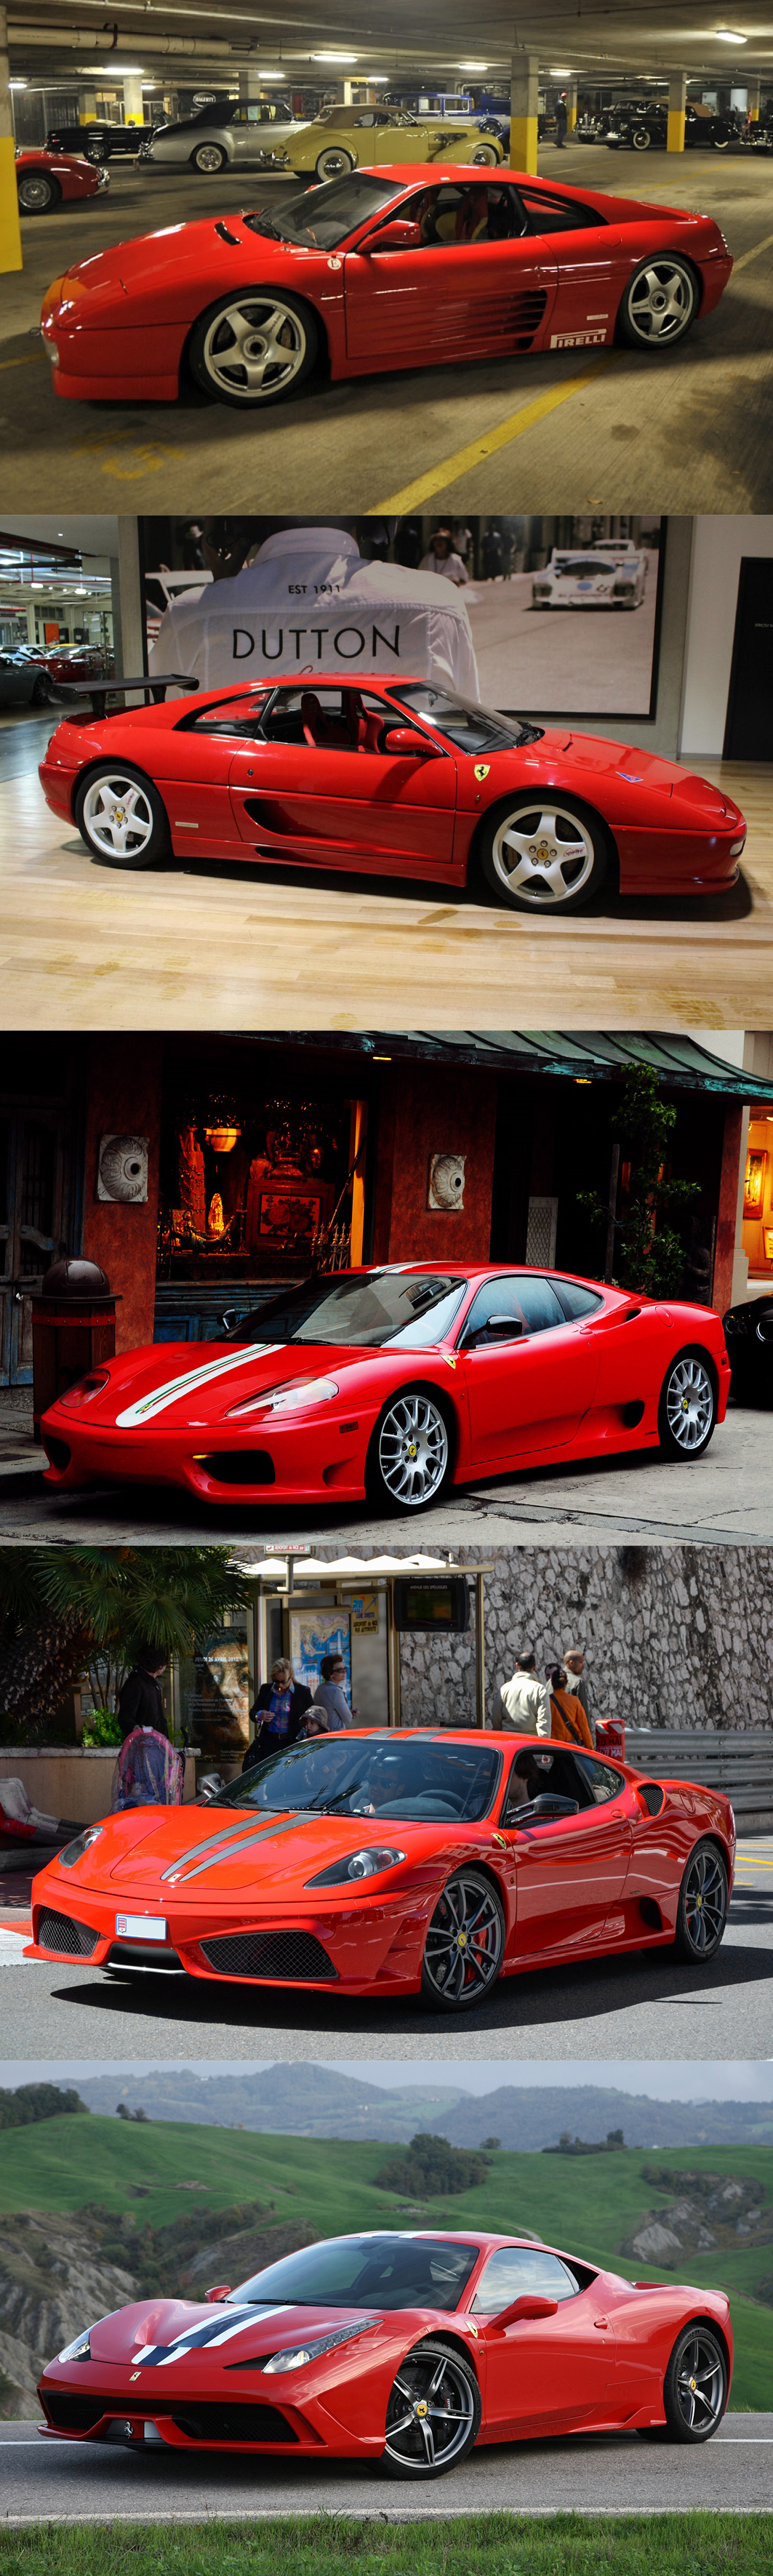 3b8aaa80e6dc1d13af6729df3b76f333 Elegant Ferrari F 108 Al-mondial 8 Cars Trend